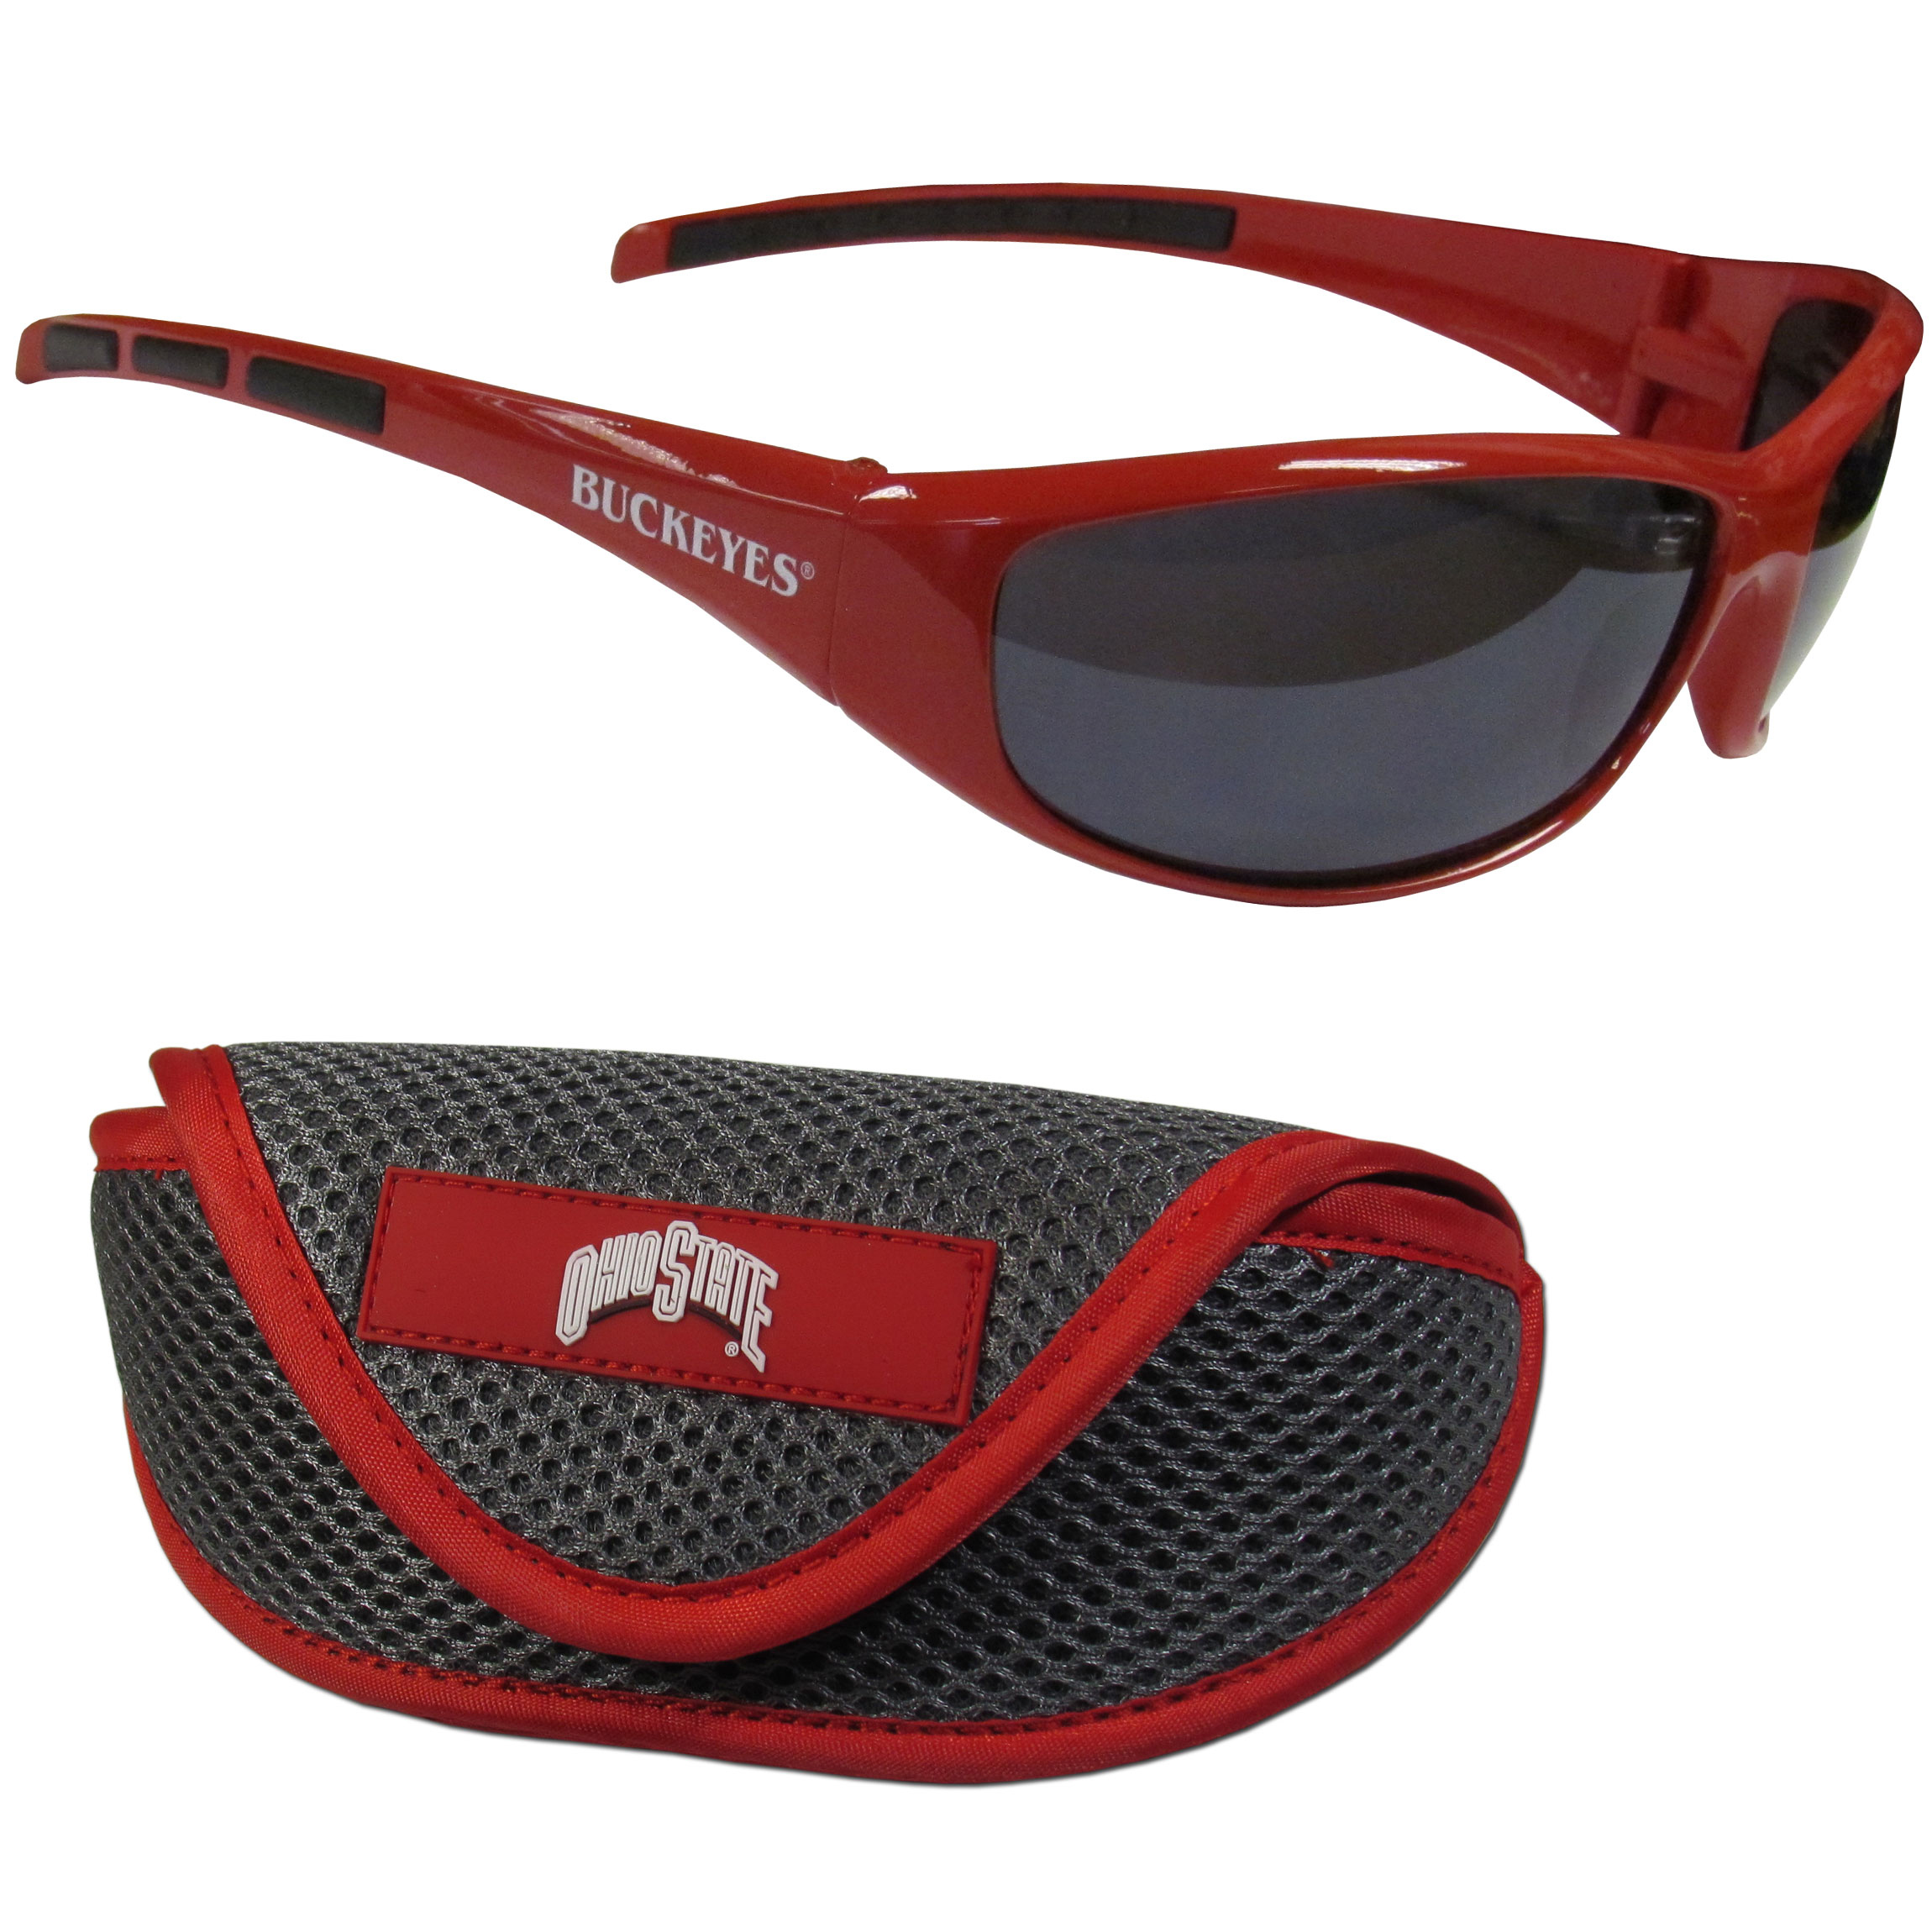 Ohio St. Buckeyes Wrap Sunglass and Case Set - This great set includes a high quality pair of Ohio St. Buckeyes wrap sunglasses and soft sport carrying case.